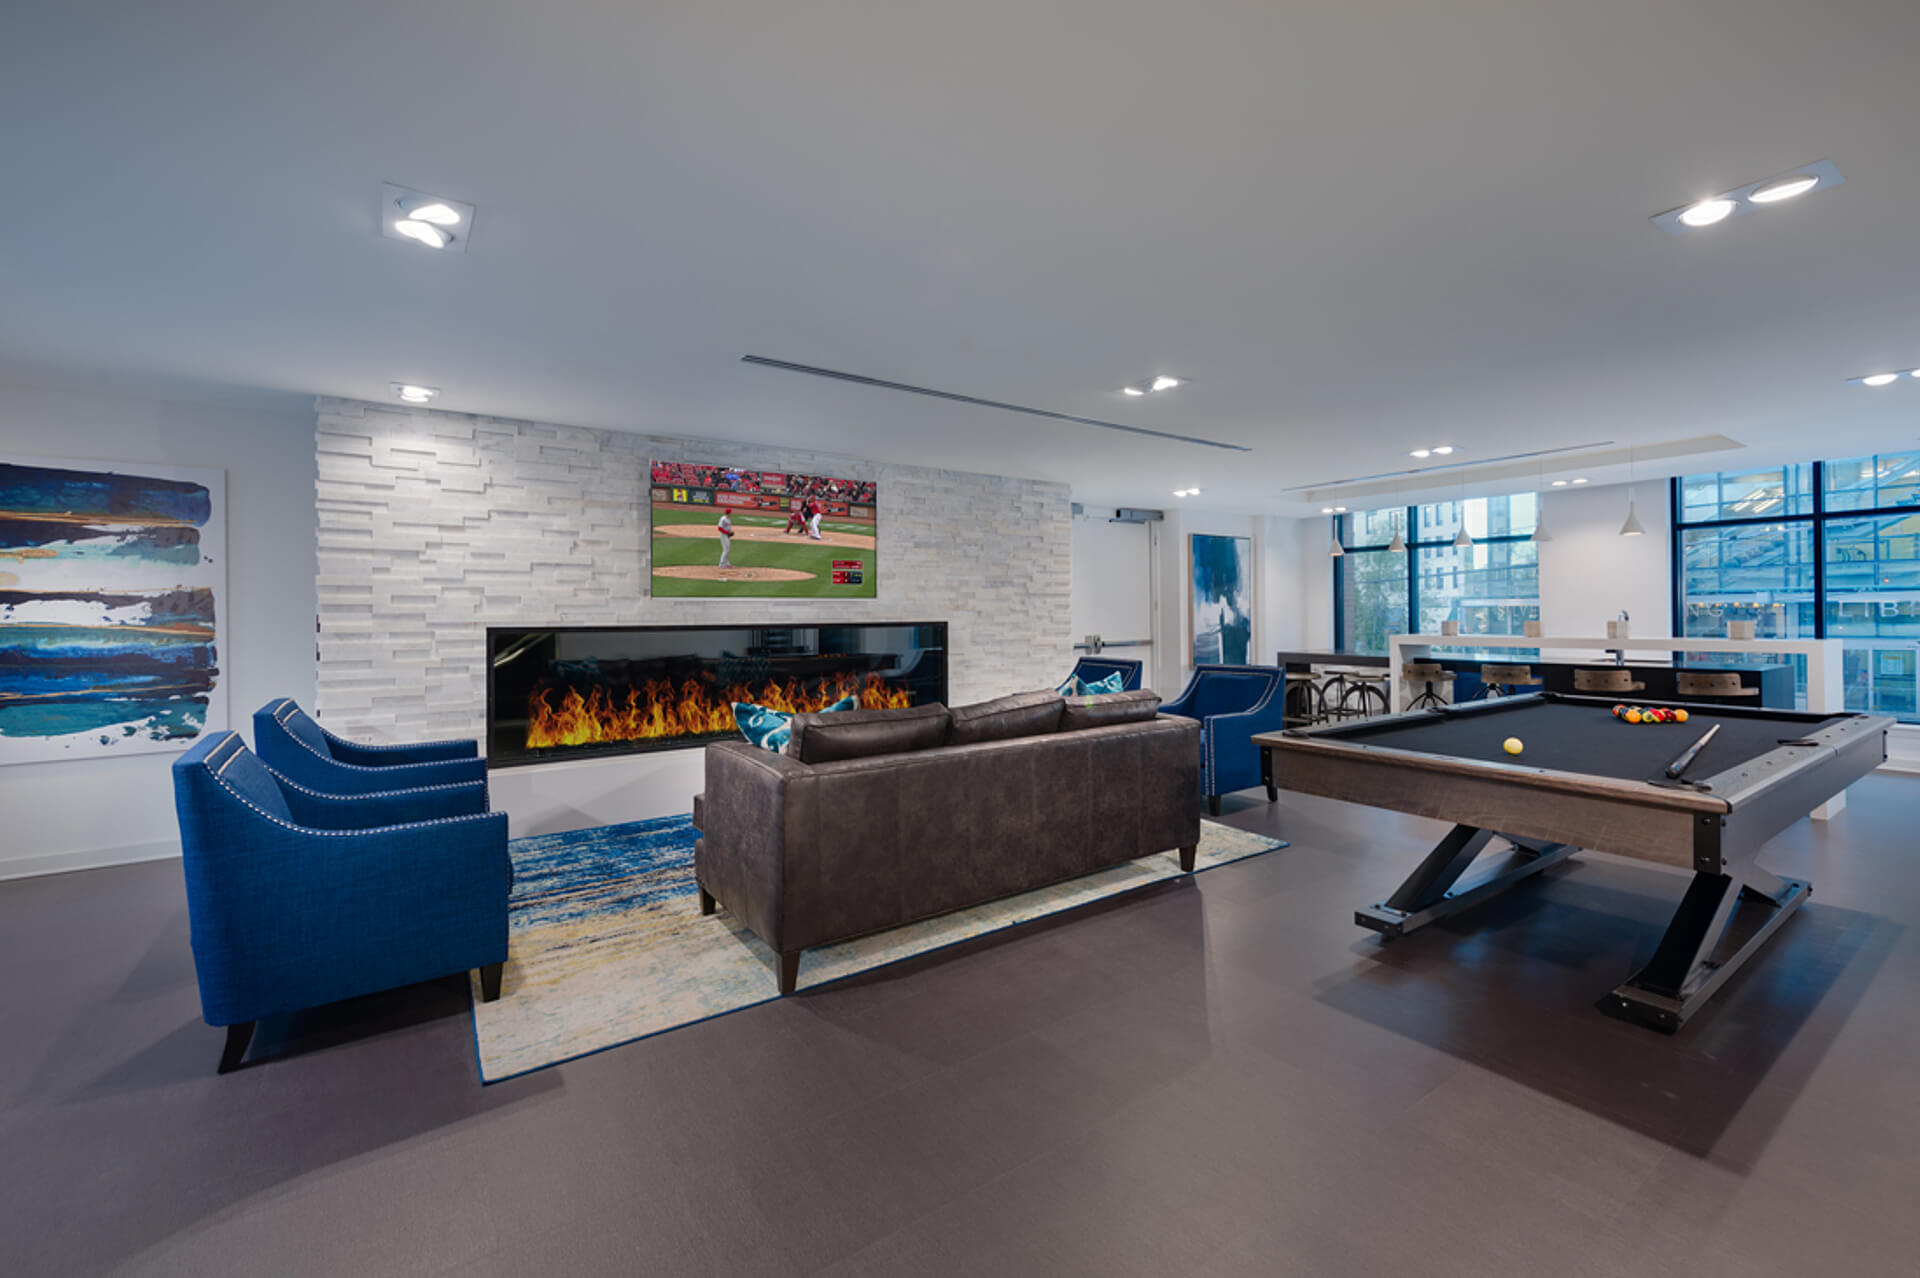 Fancy a game of pool? Try the resident lounge